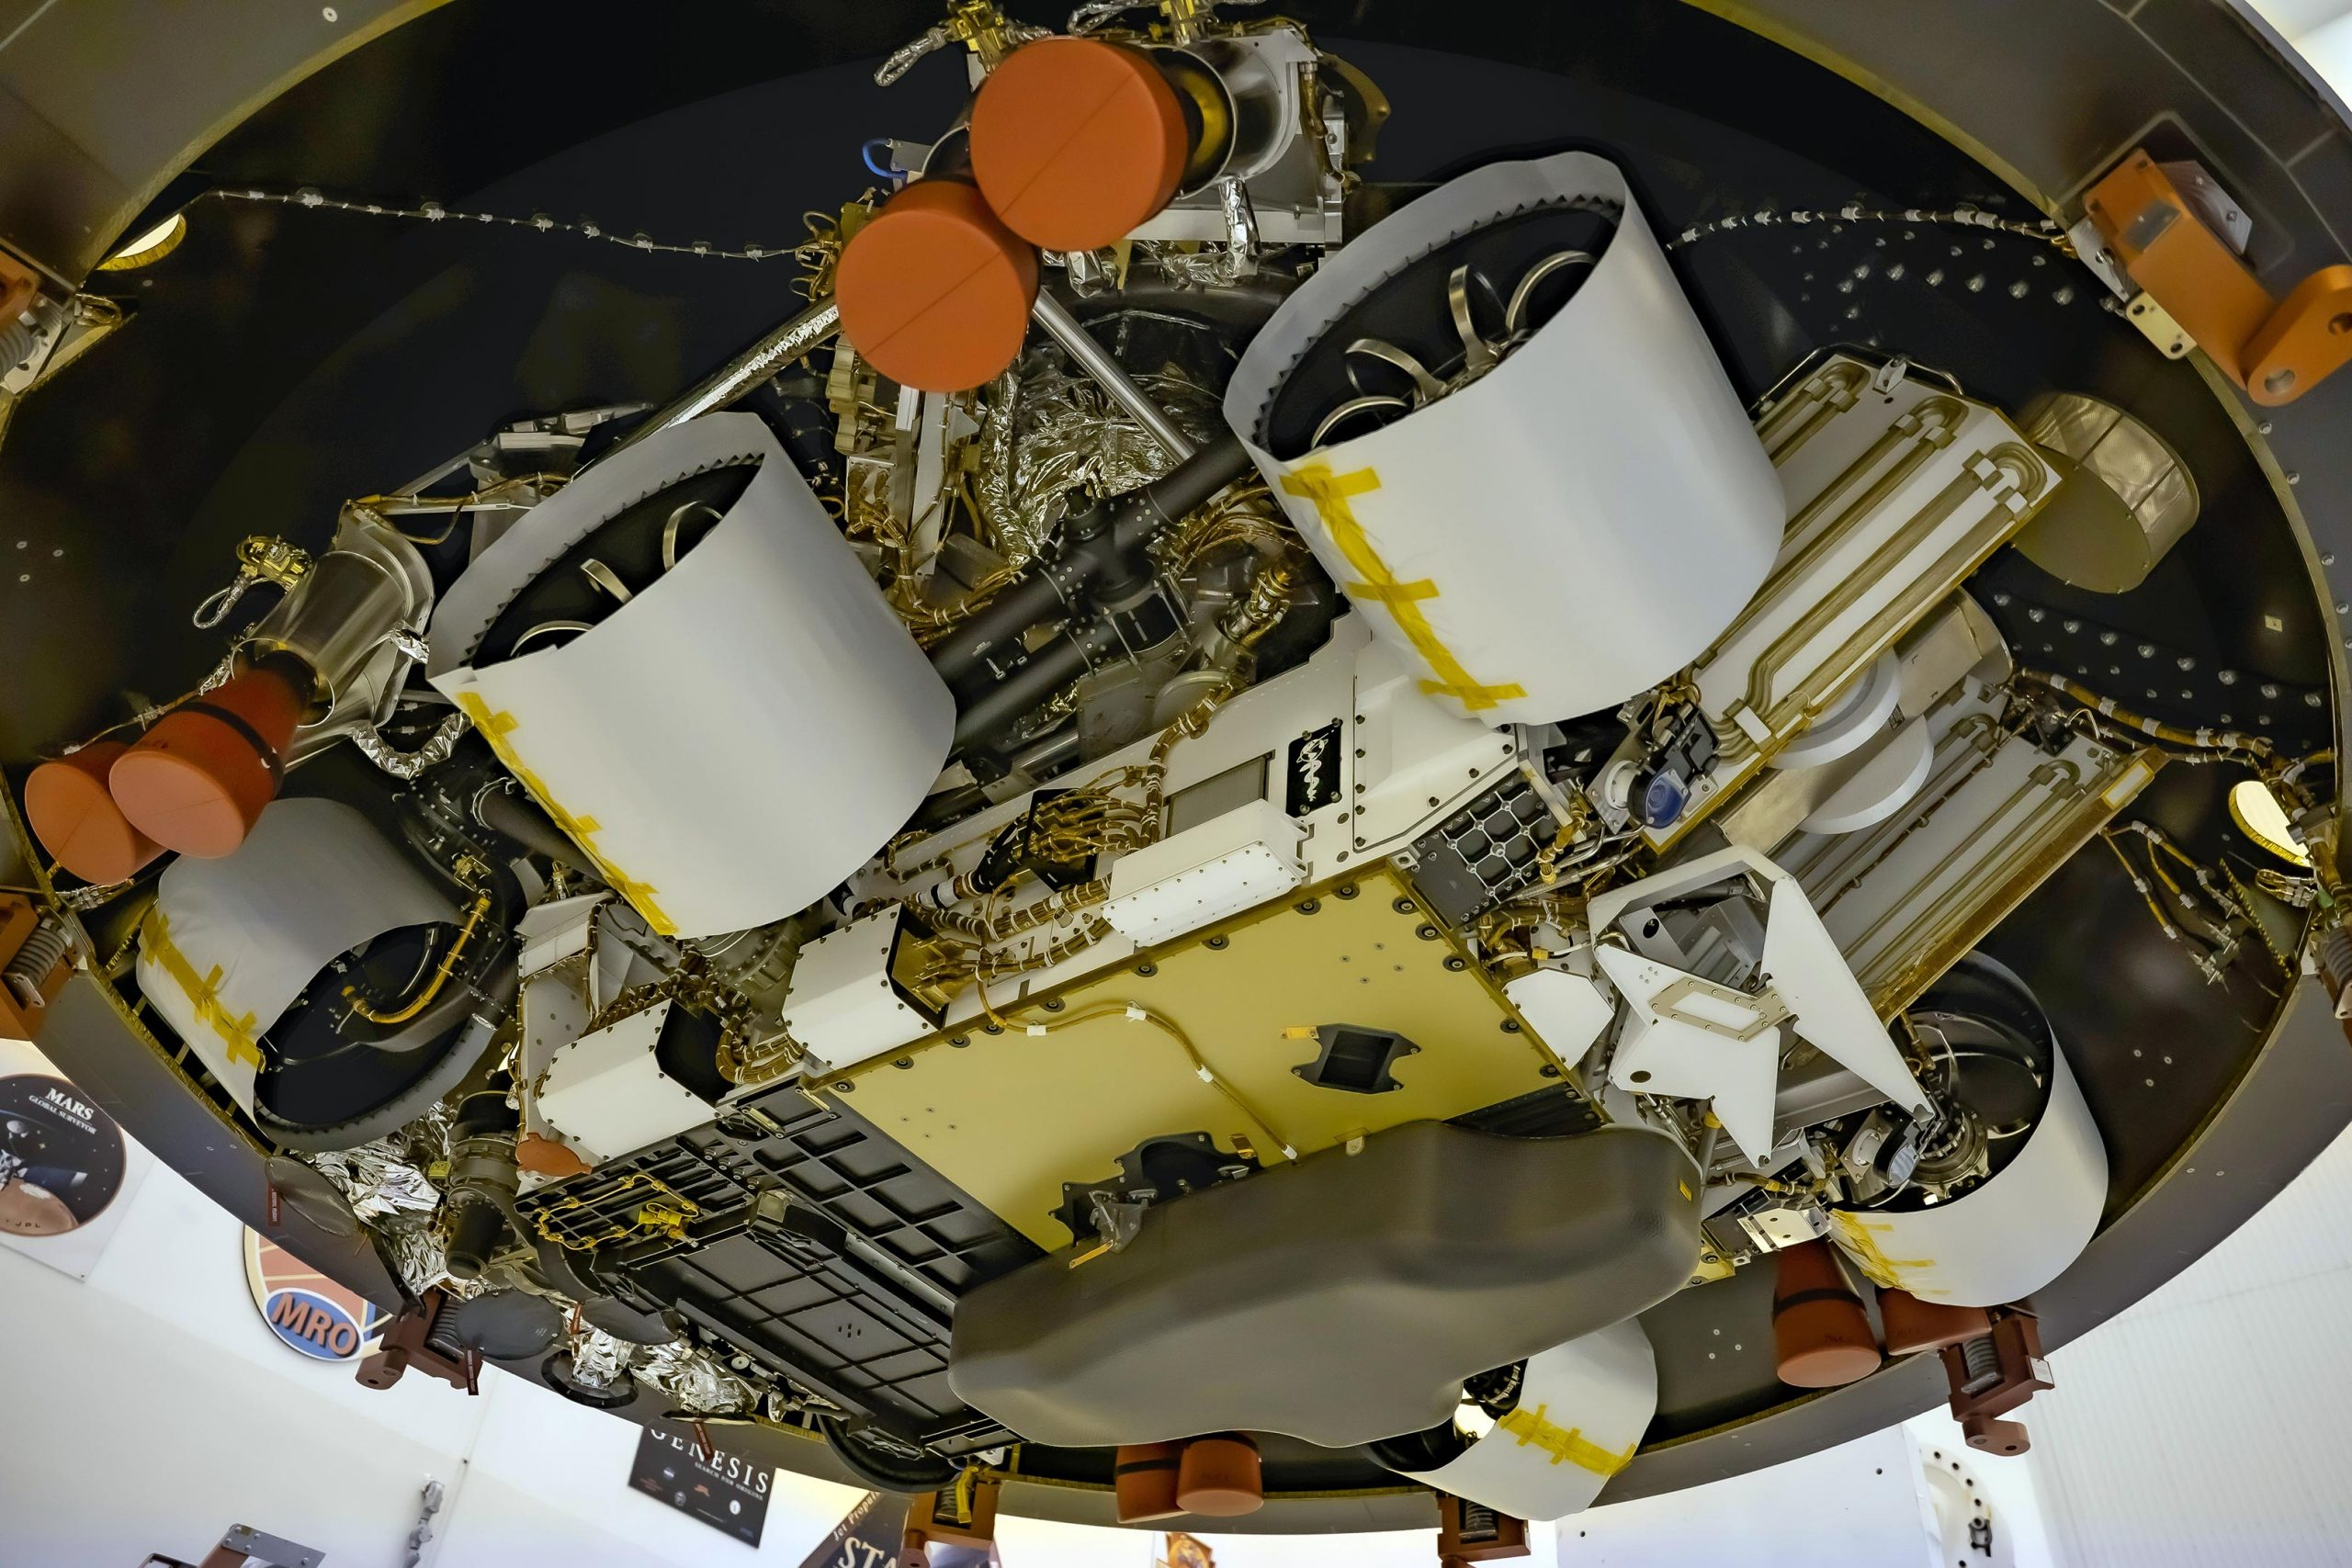 Despite COVID-19 Impacts, Launch Is Fast Approaching for ...